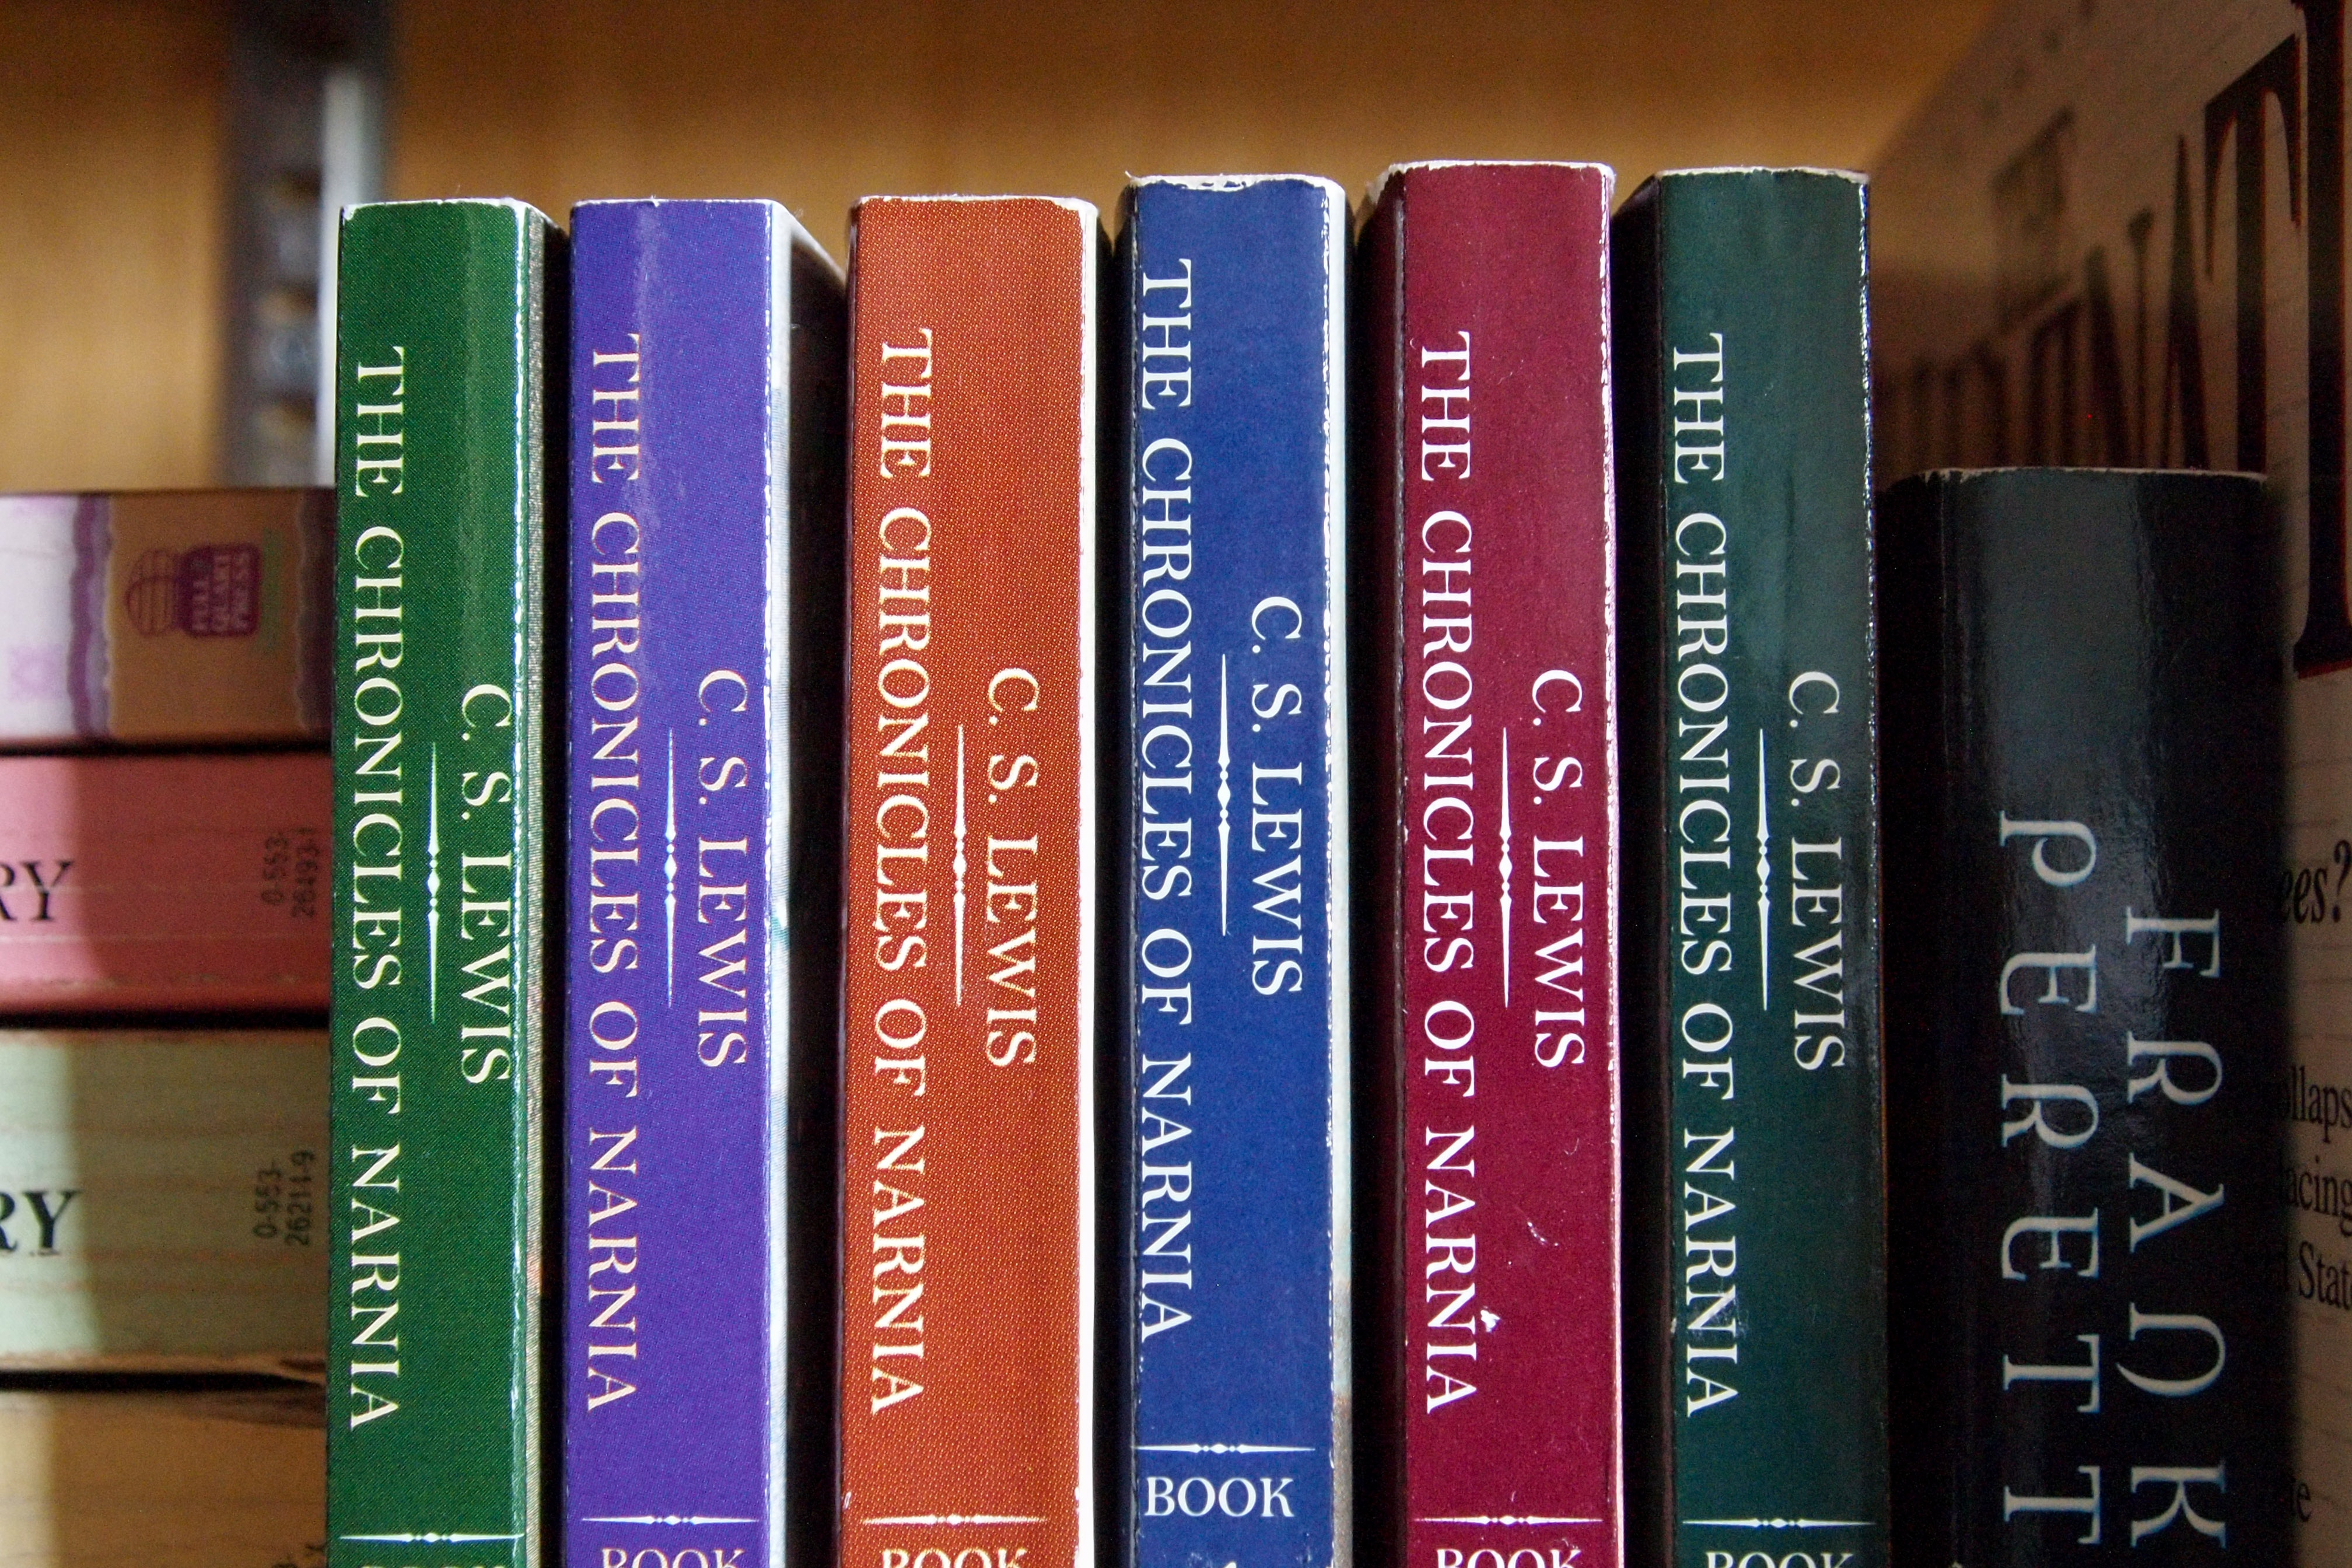 The Chronicles of Narnia books